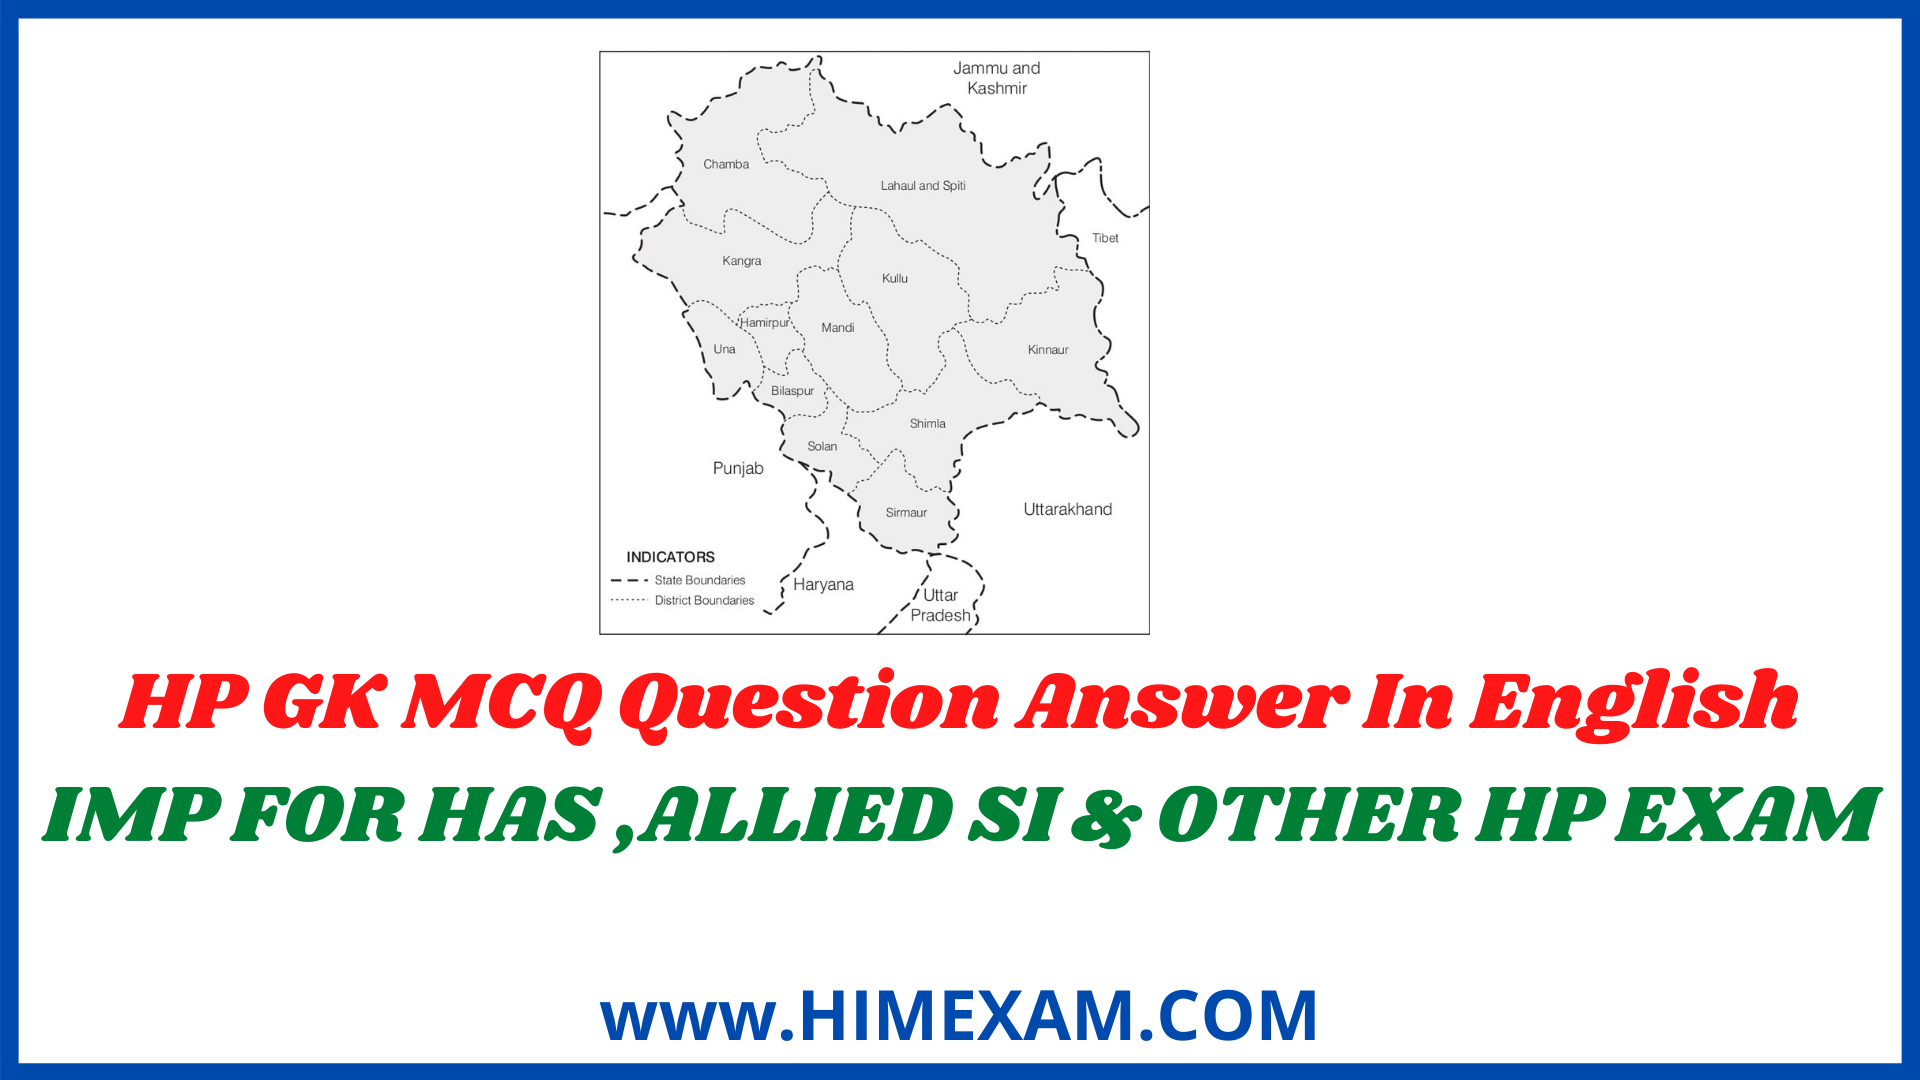 HP GK MCQ Question Answer In English